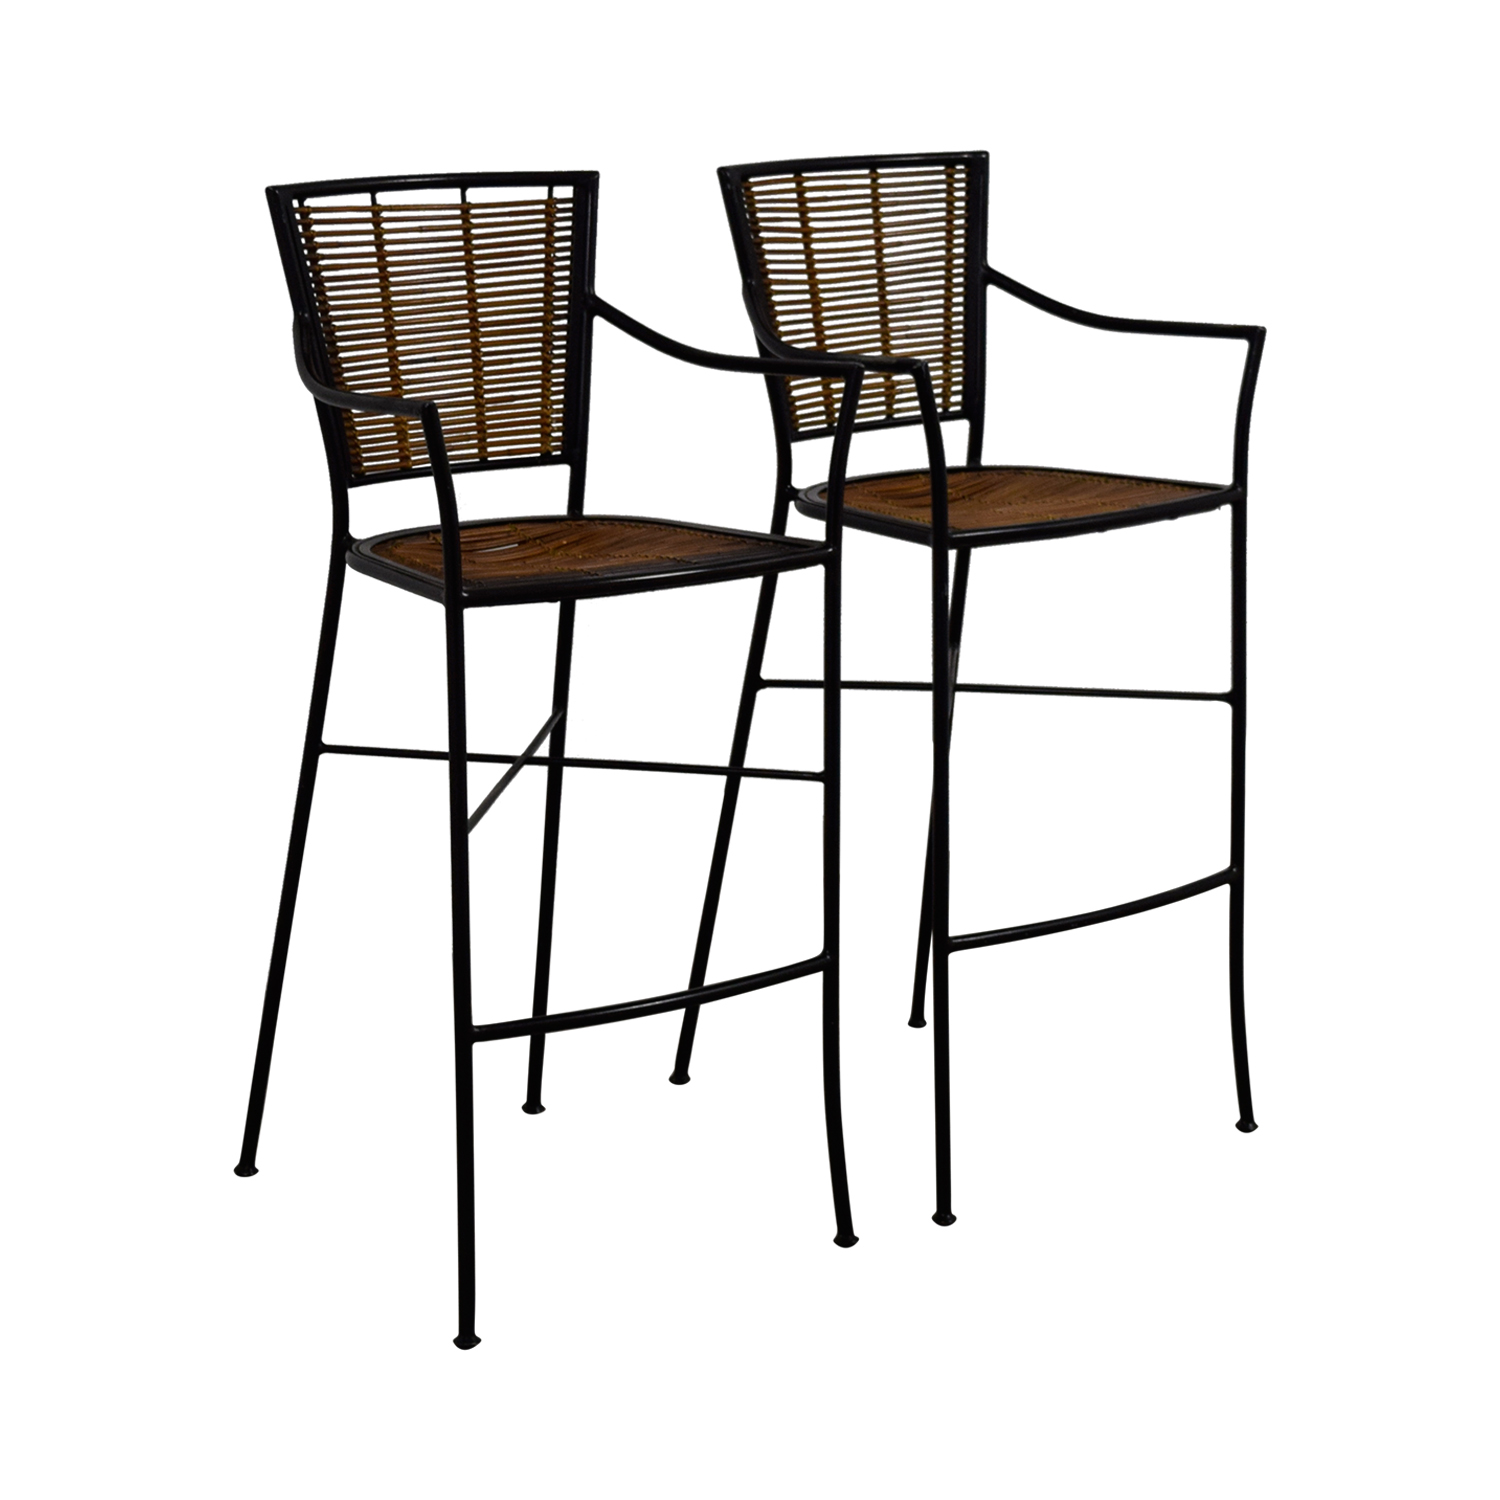 80 Off Bamboo And Metal Bar Stools Chairs